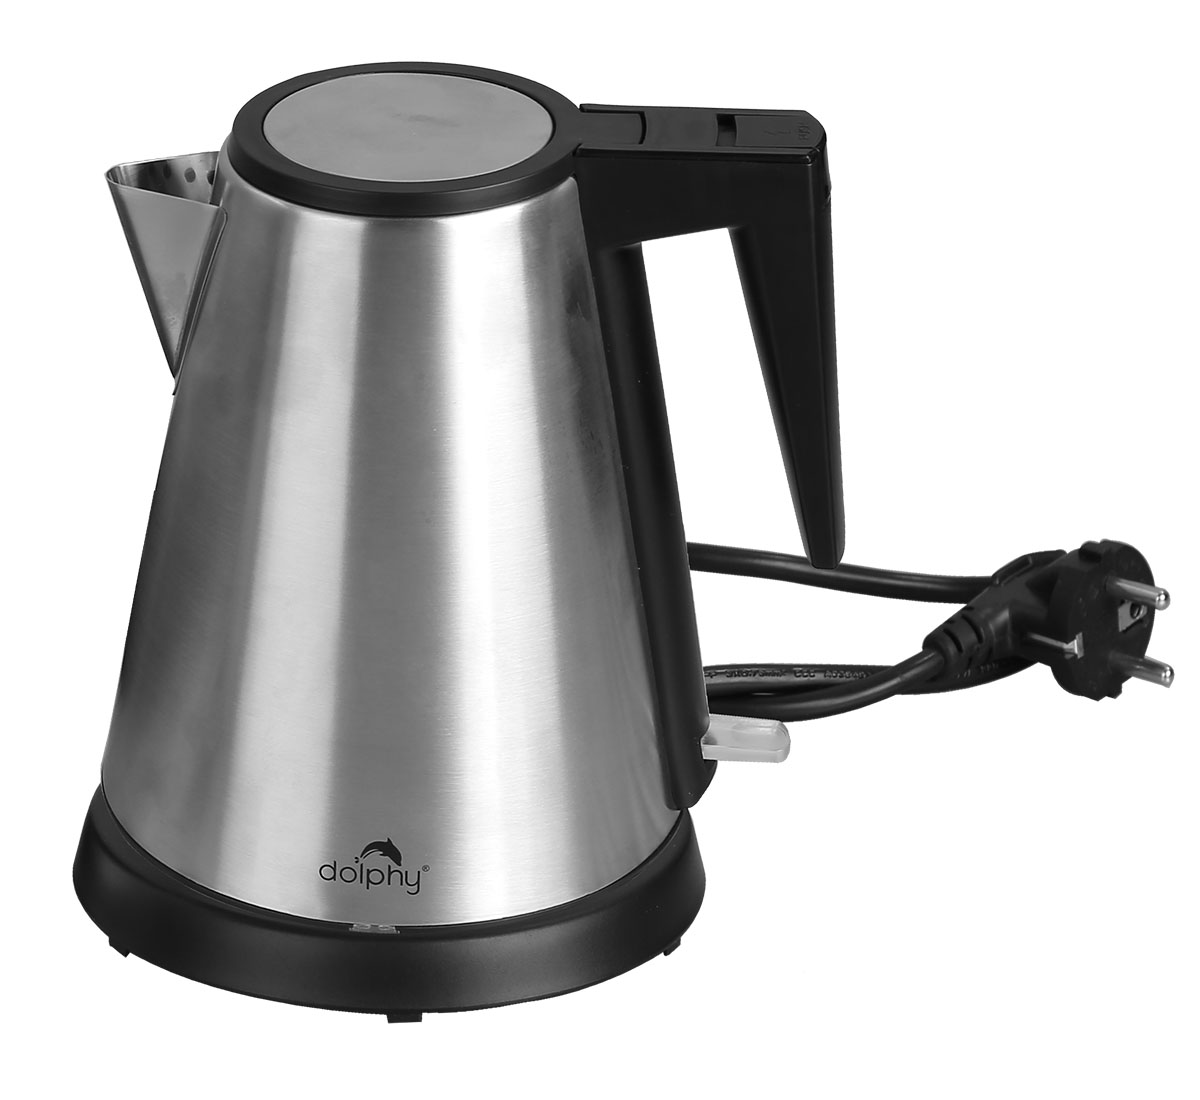 Stainless Steel Electric Kettle (1.2 L)-DKTL0007